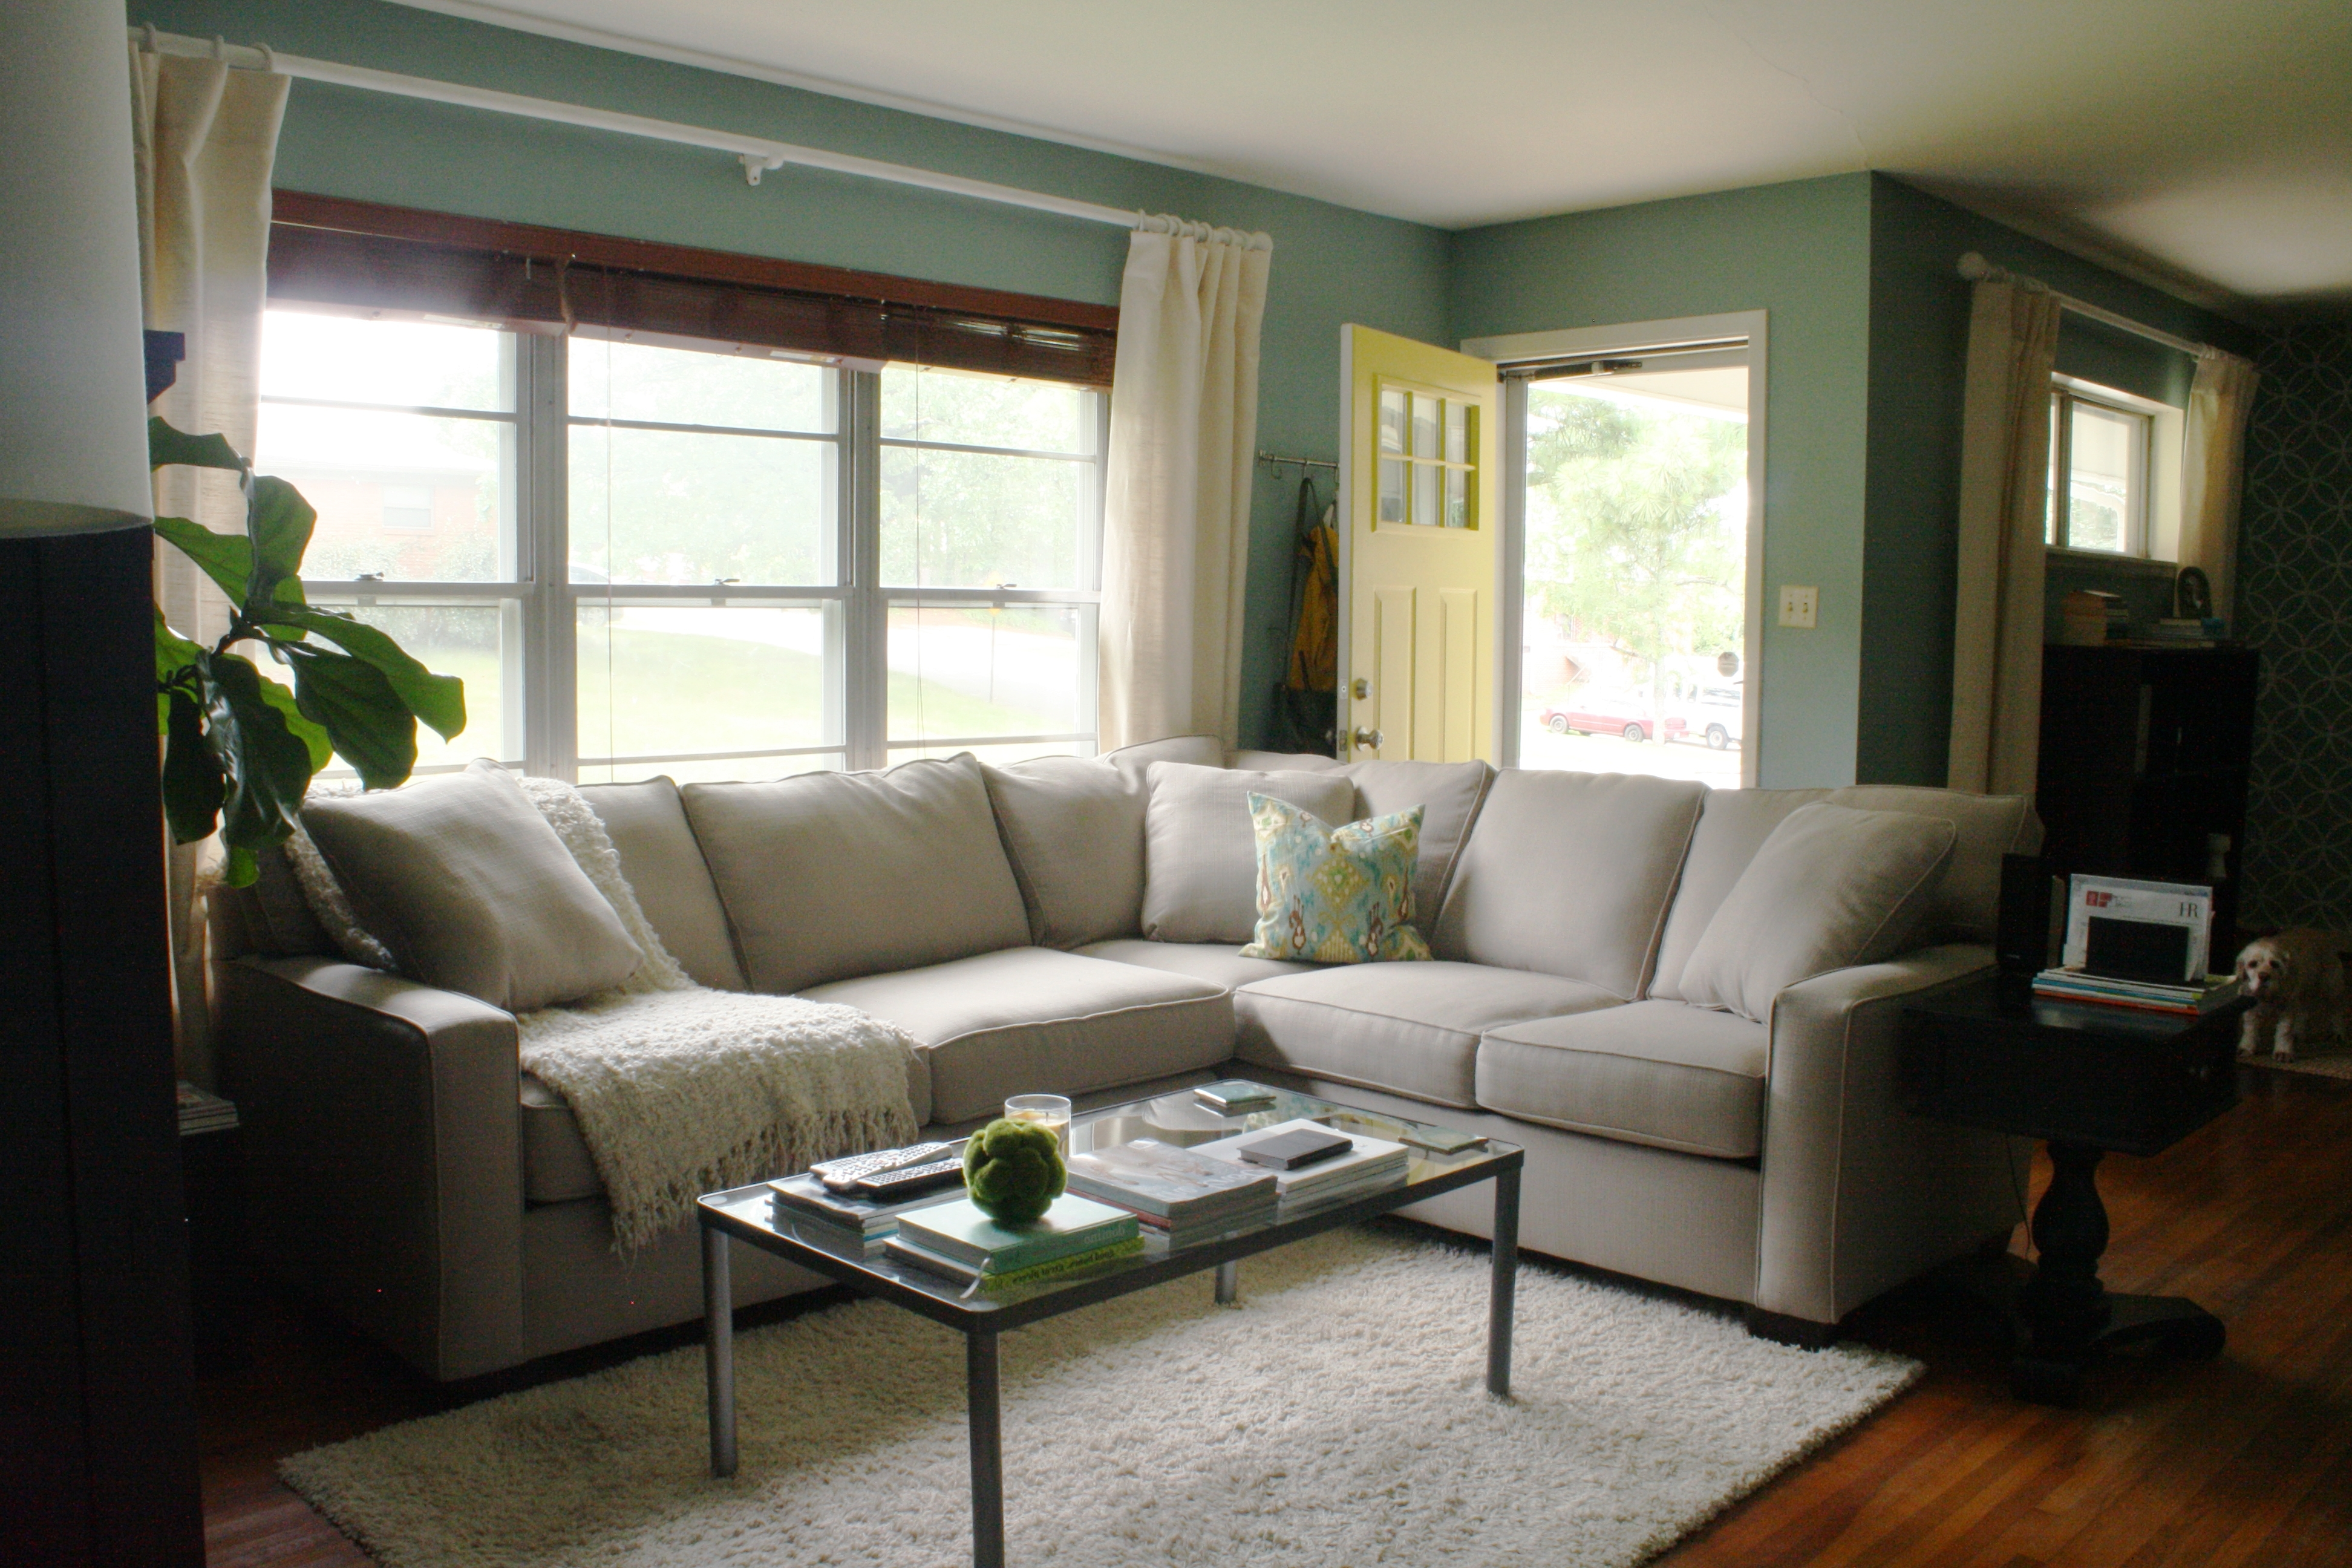 Most Popular Dillards Sectional Sofas Intended For Dillards Furniture Sofas 46 With Dillards Furniture Sofas (View 6 of 15)